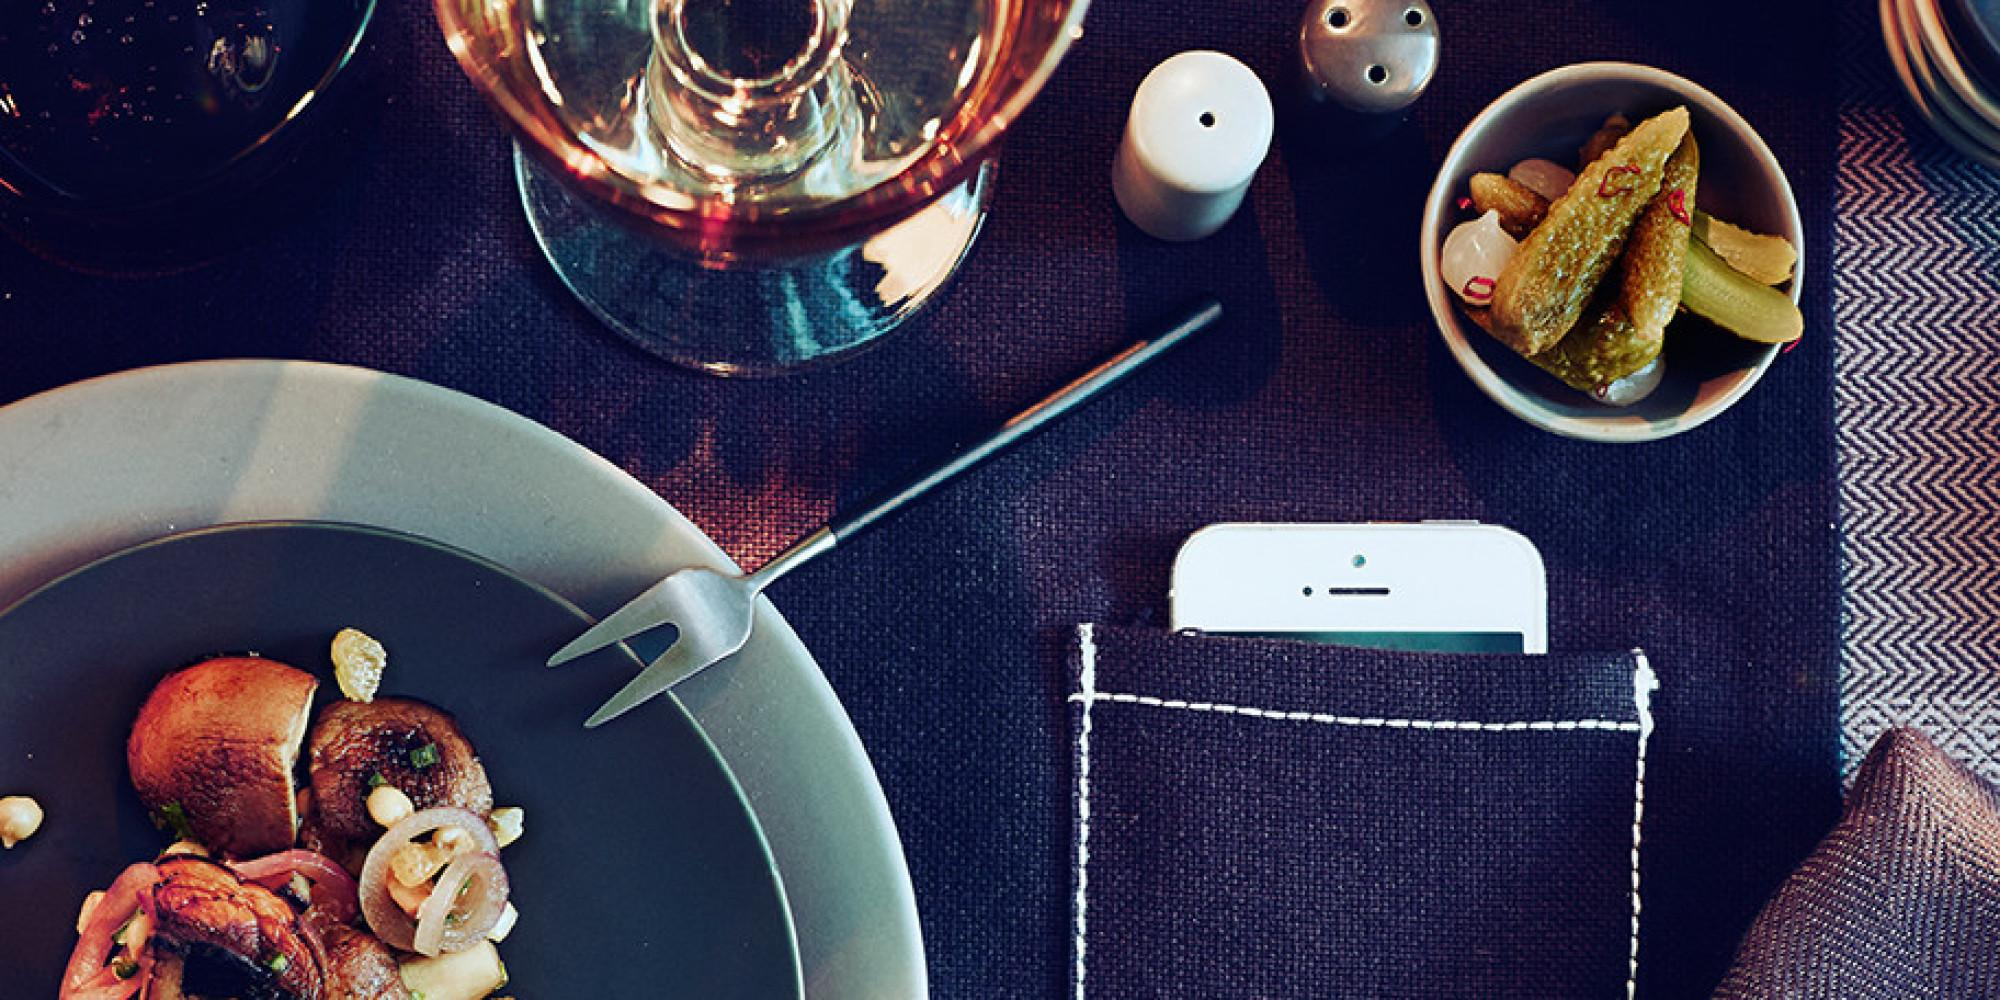 Develops Phone Pocket Placemat Those Refuse